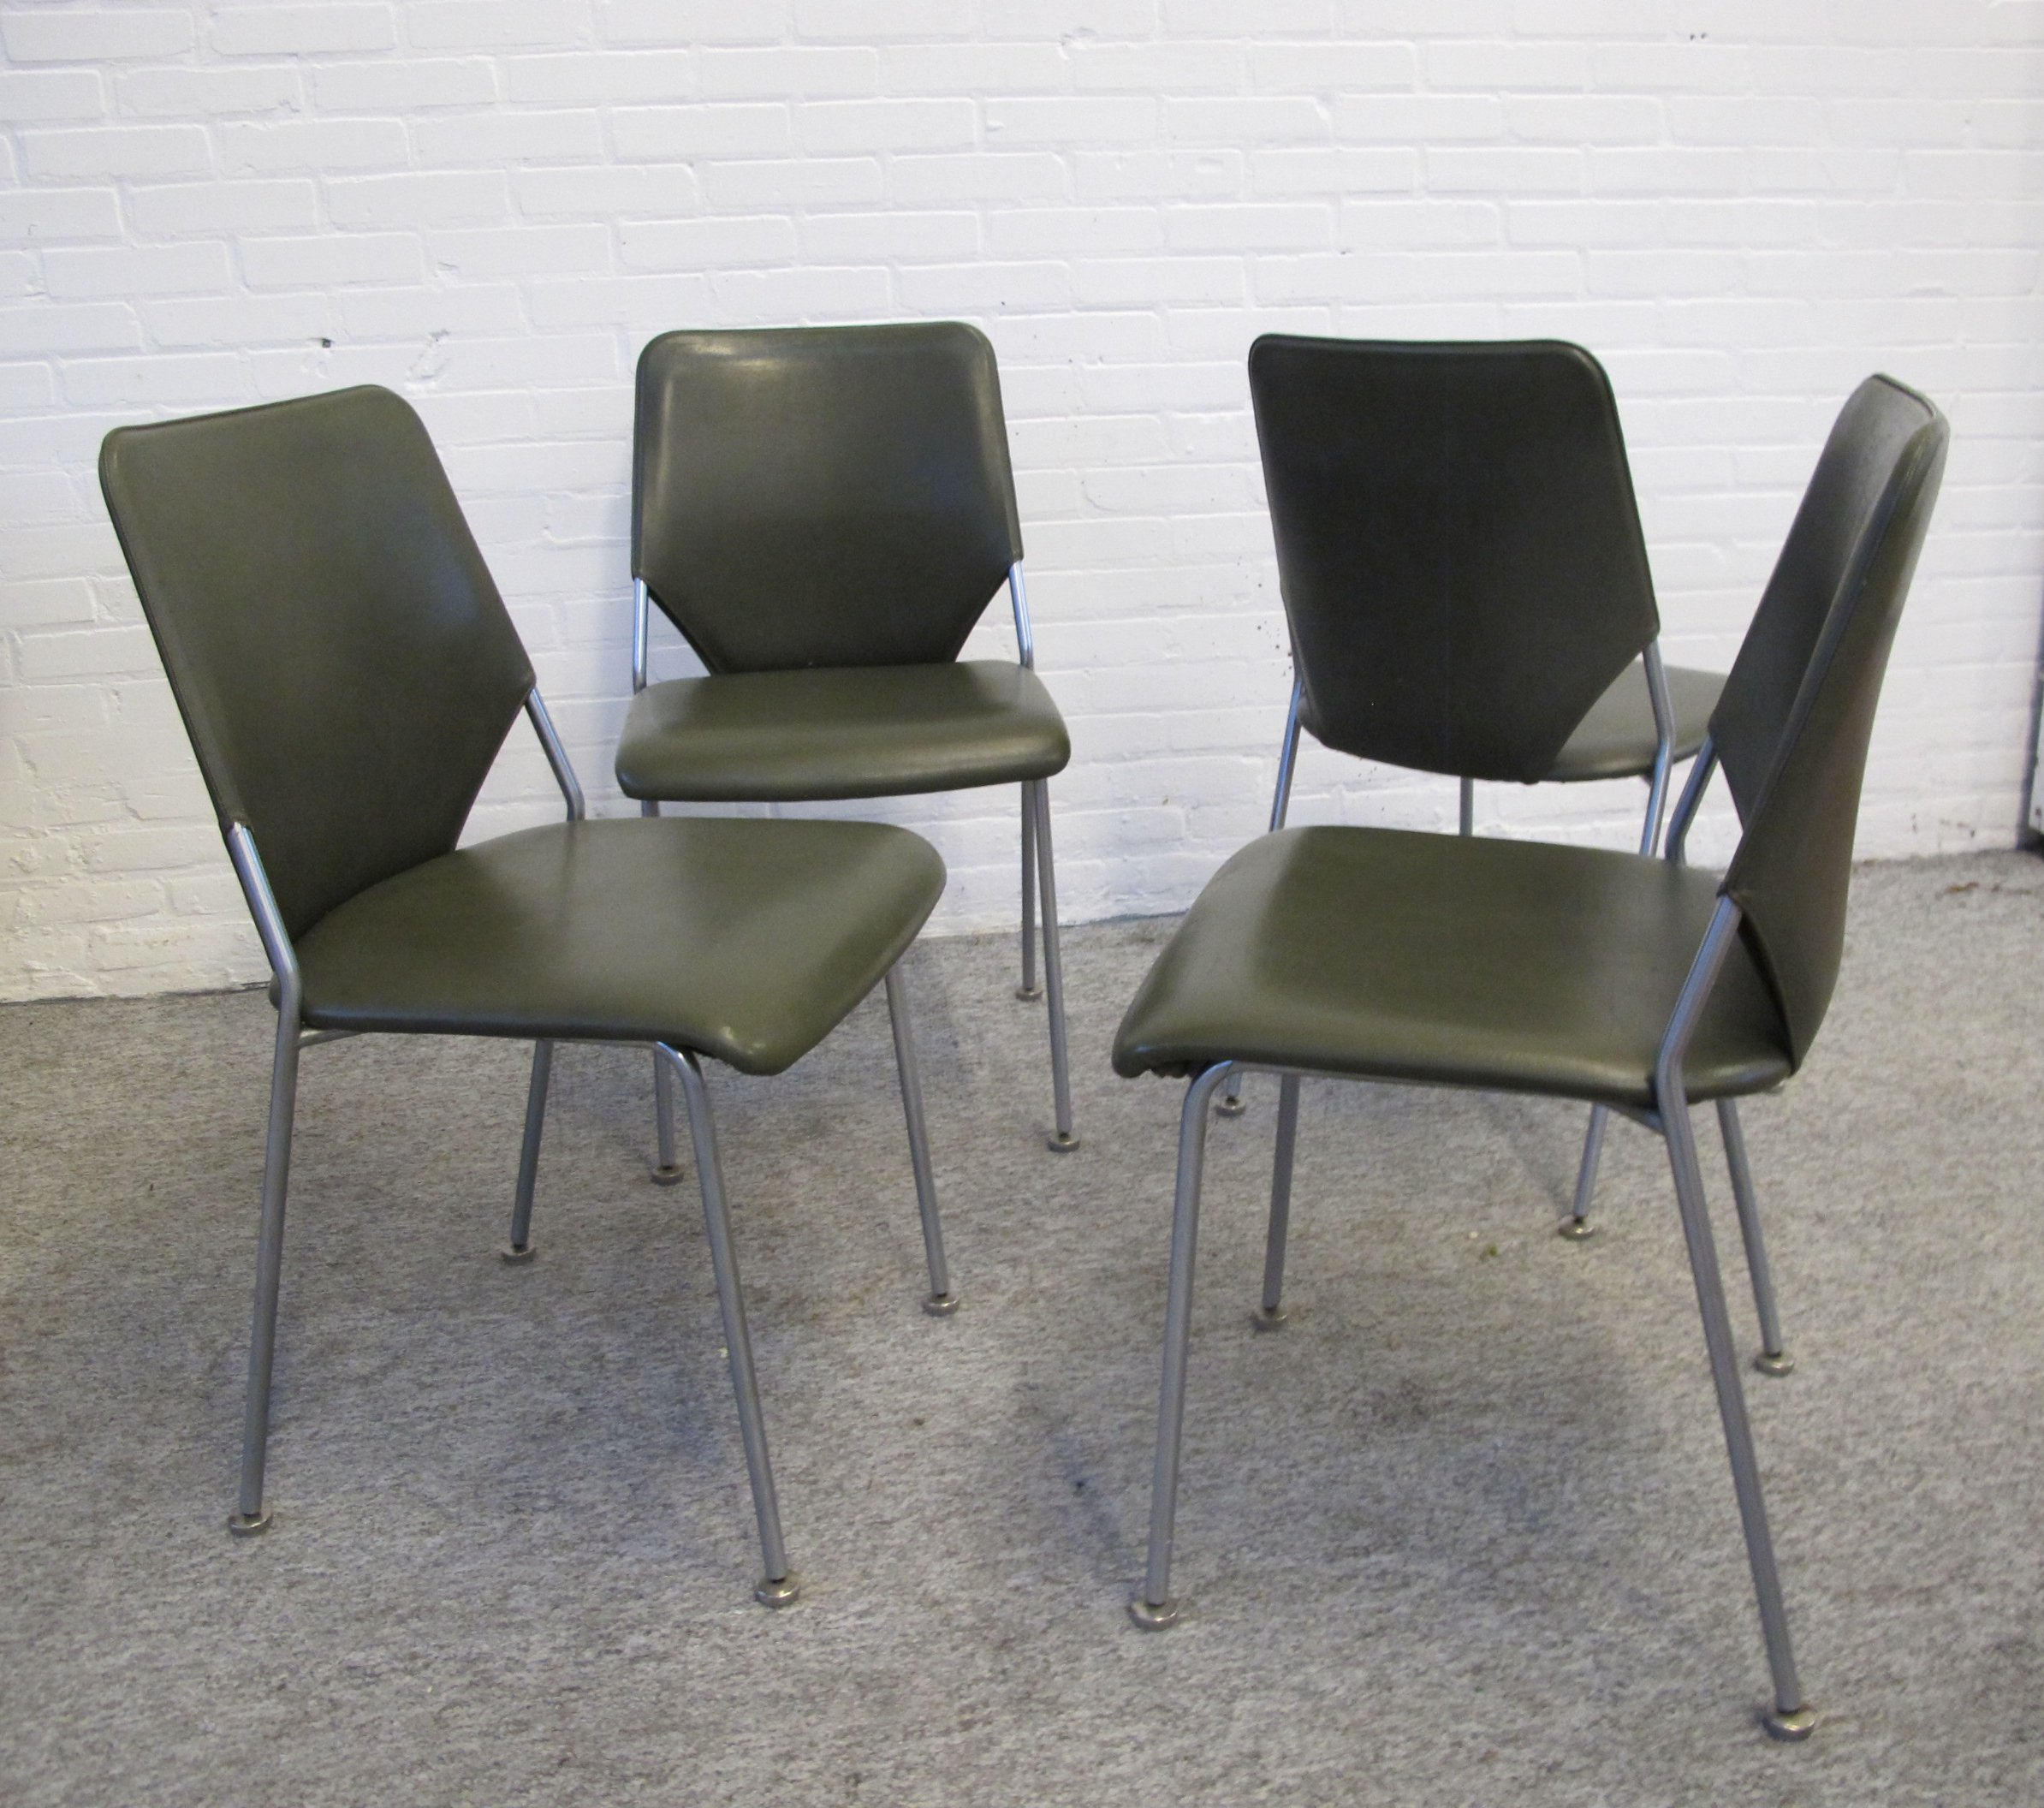 Set Of 4 Vintage Dining Room Chairs 1960s 148208